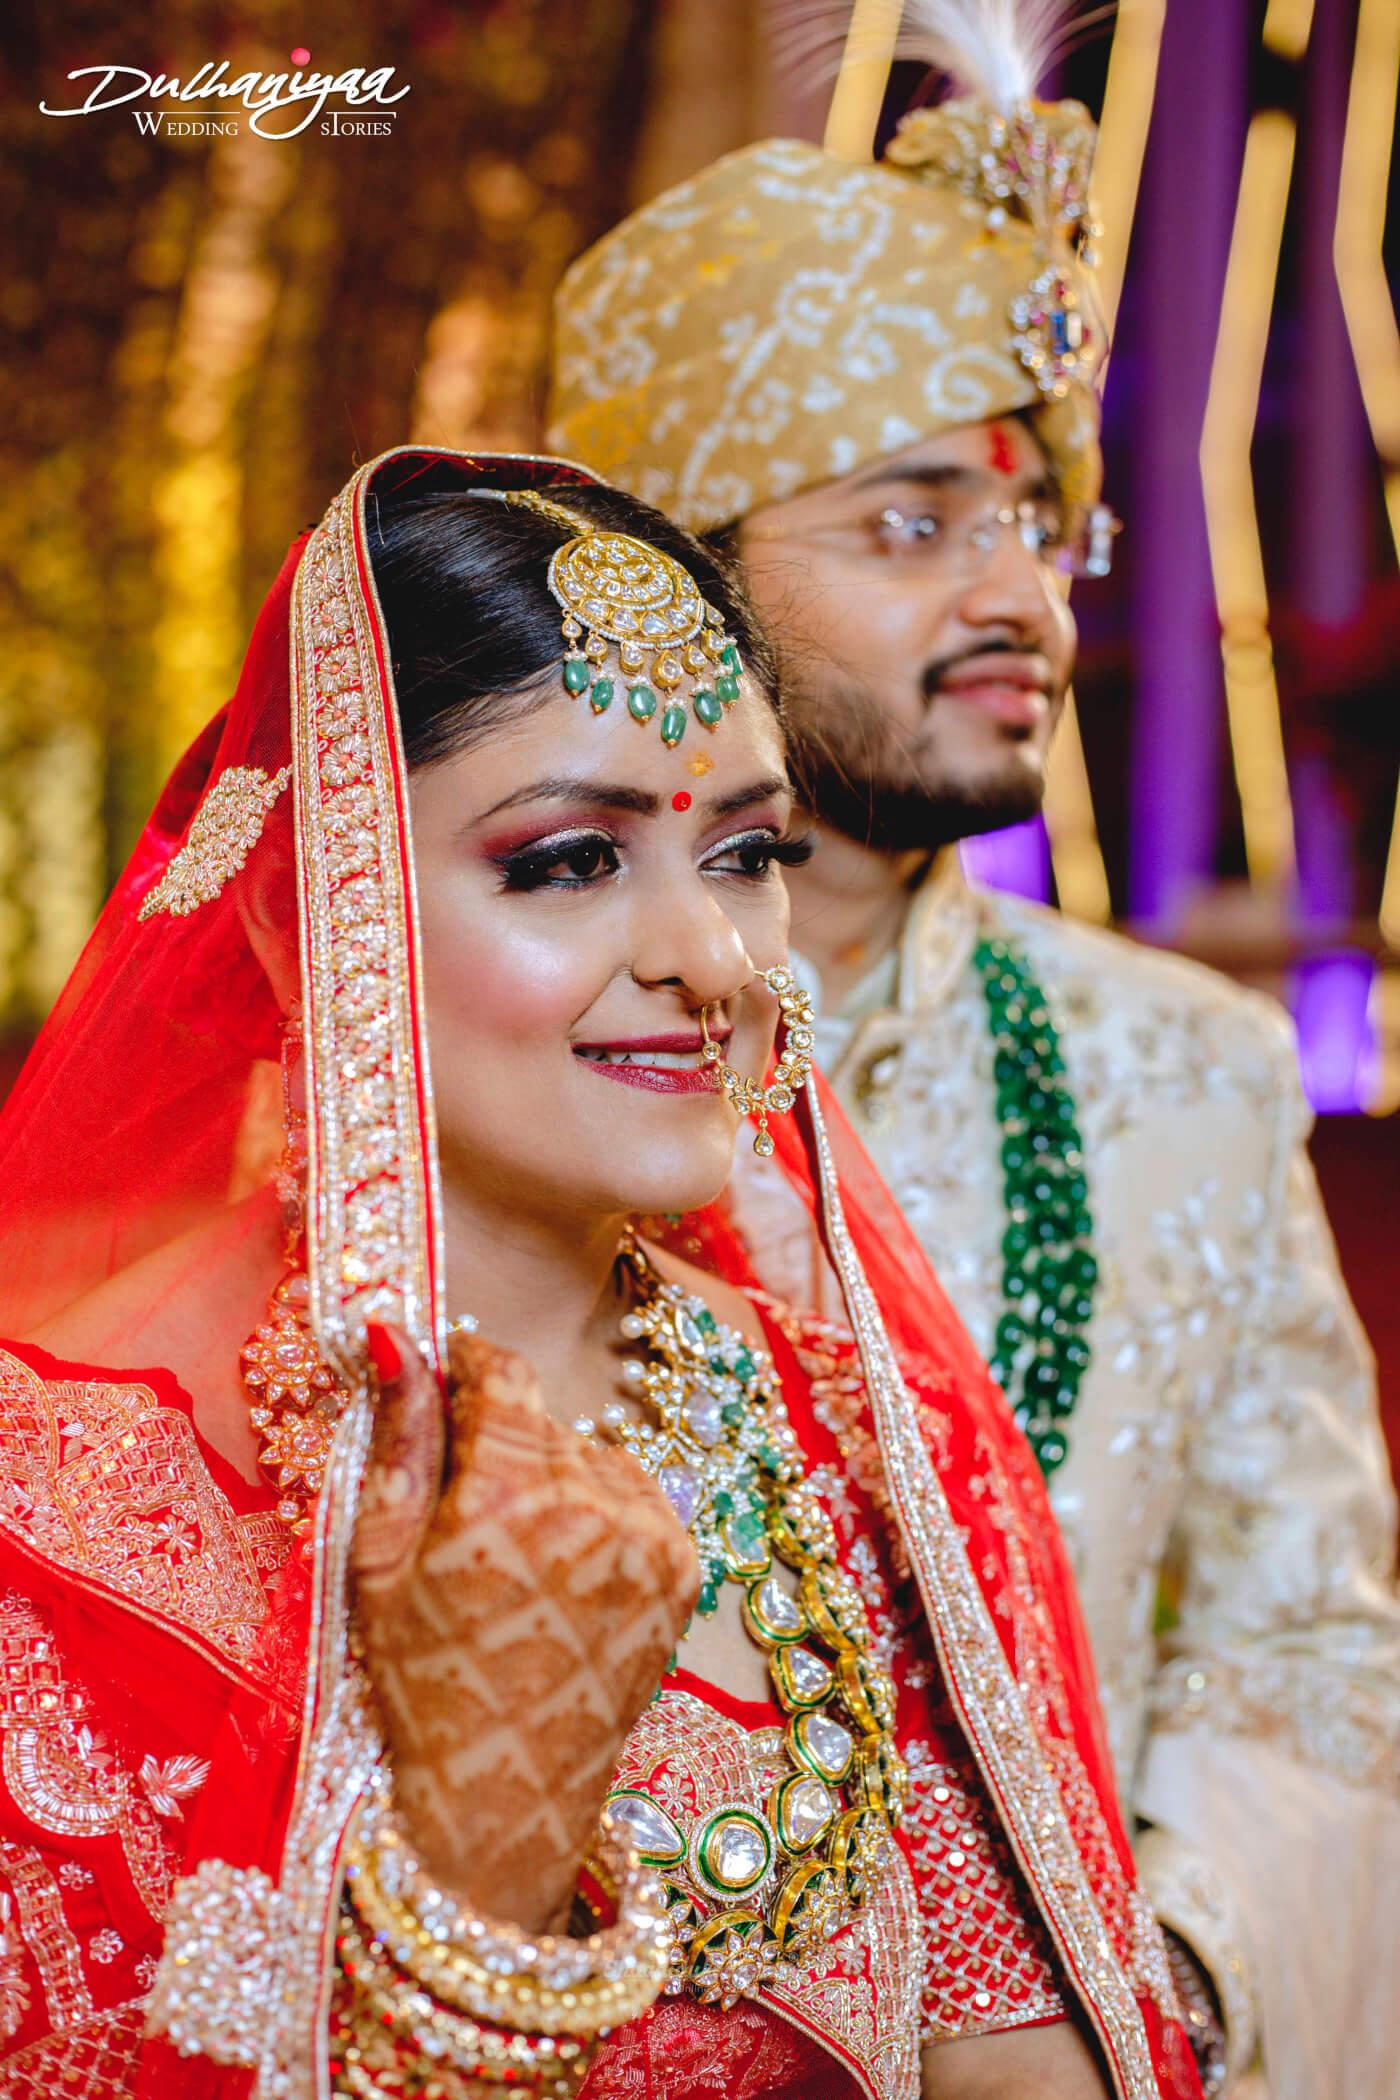 Dulhaniyaa Wedding Stories